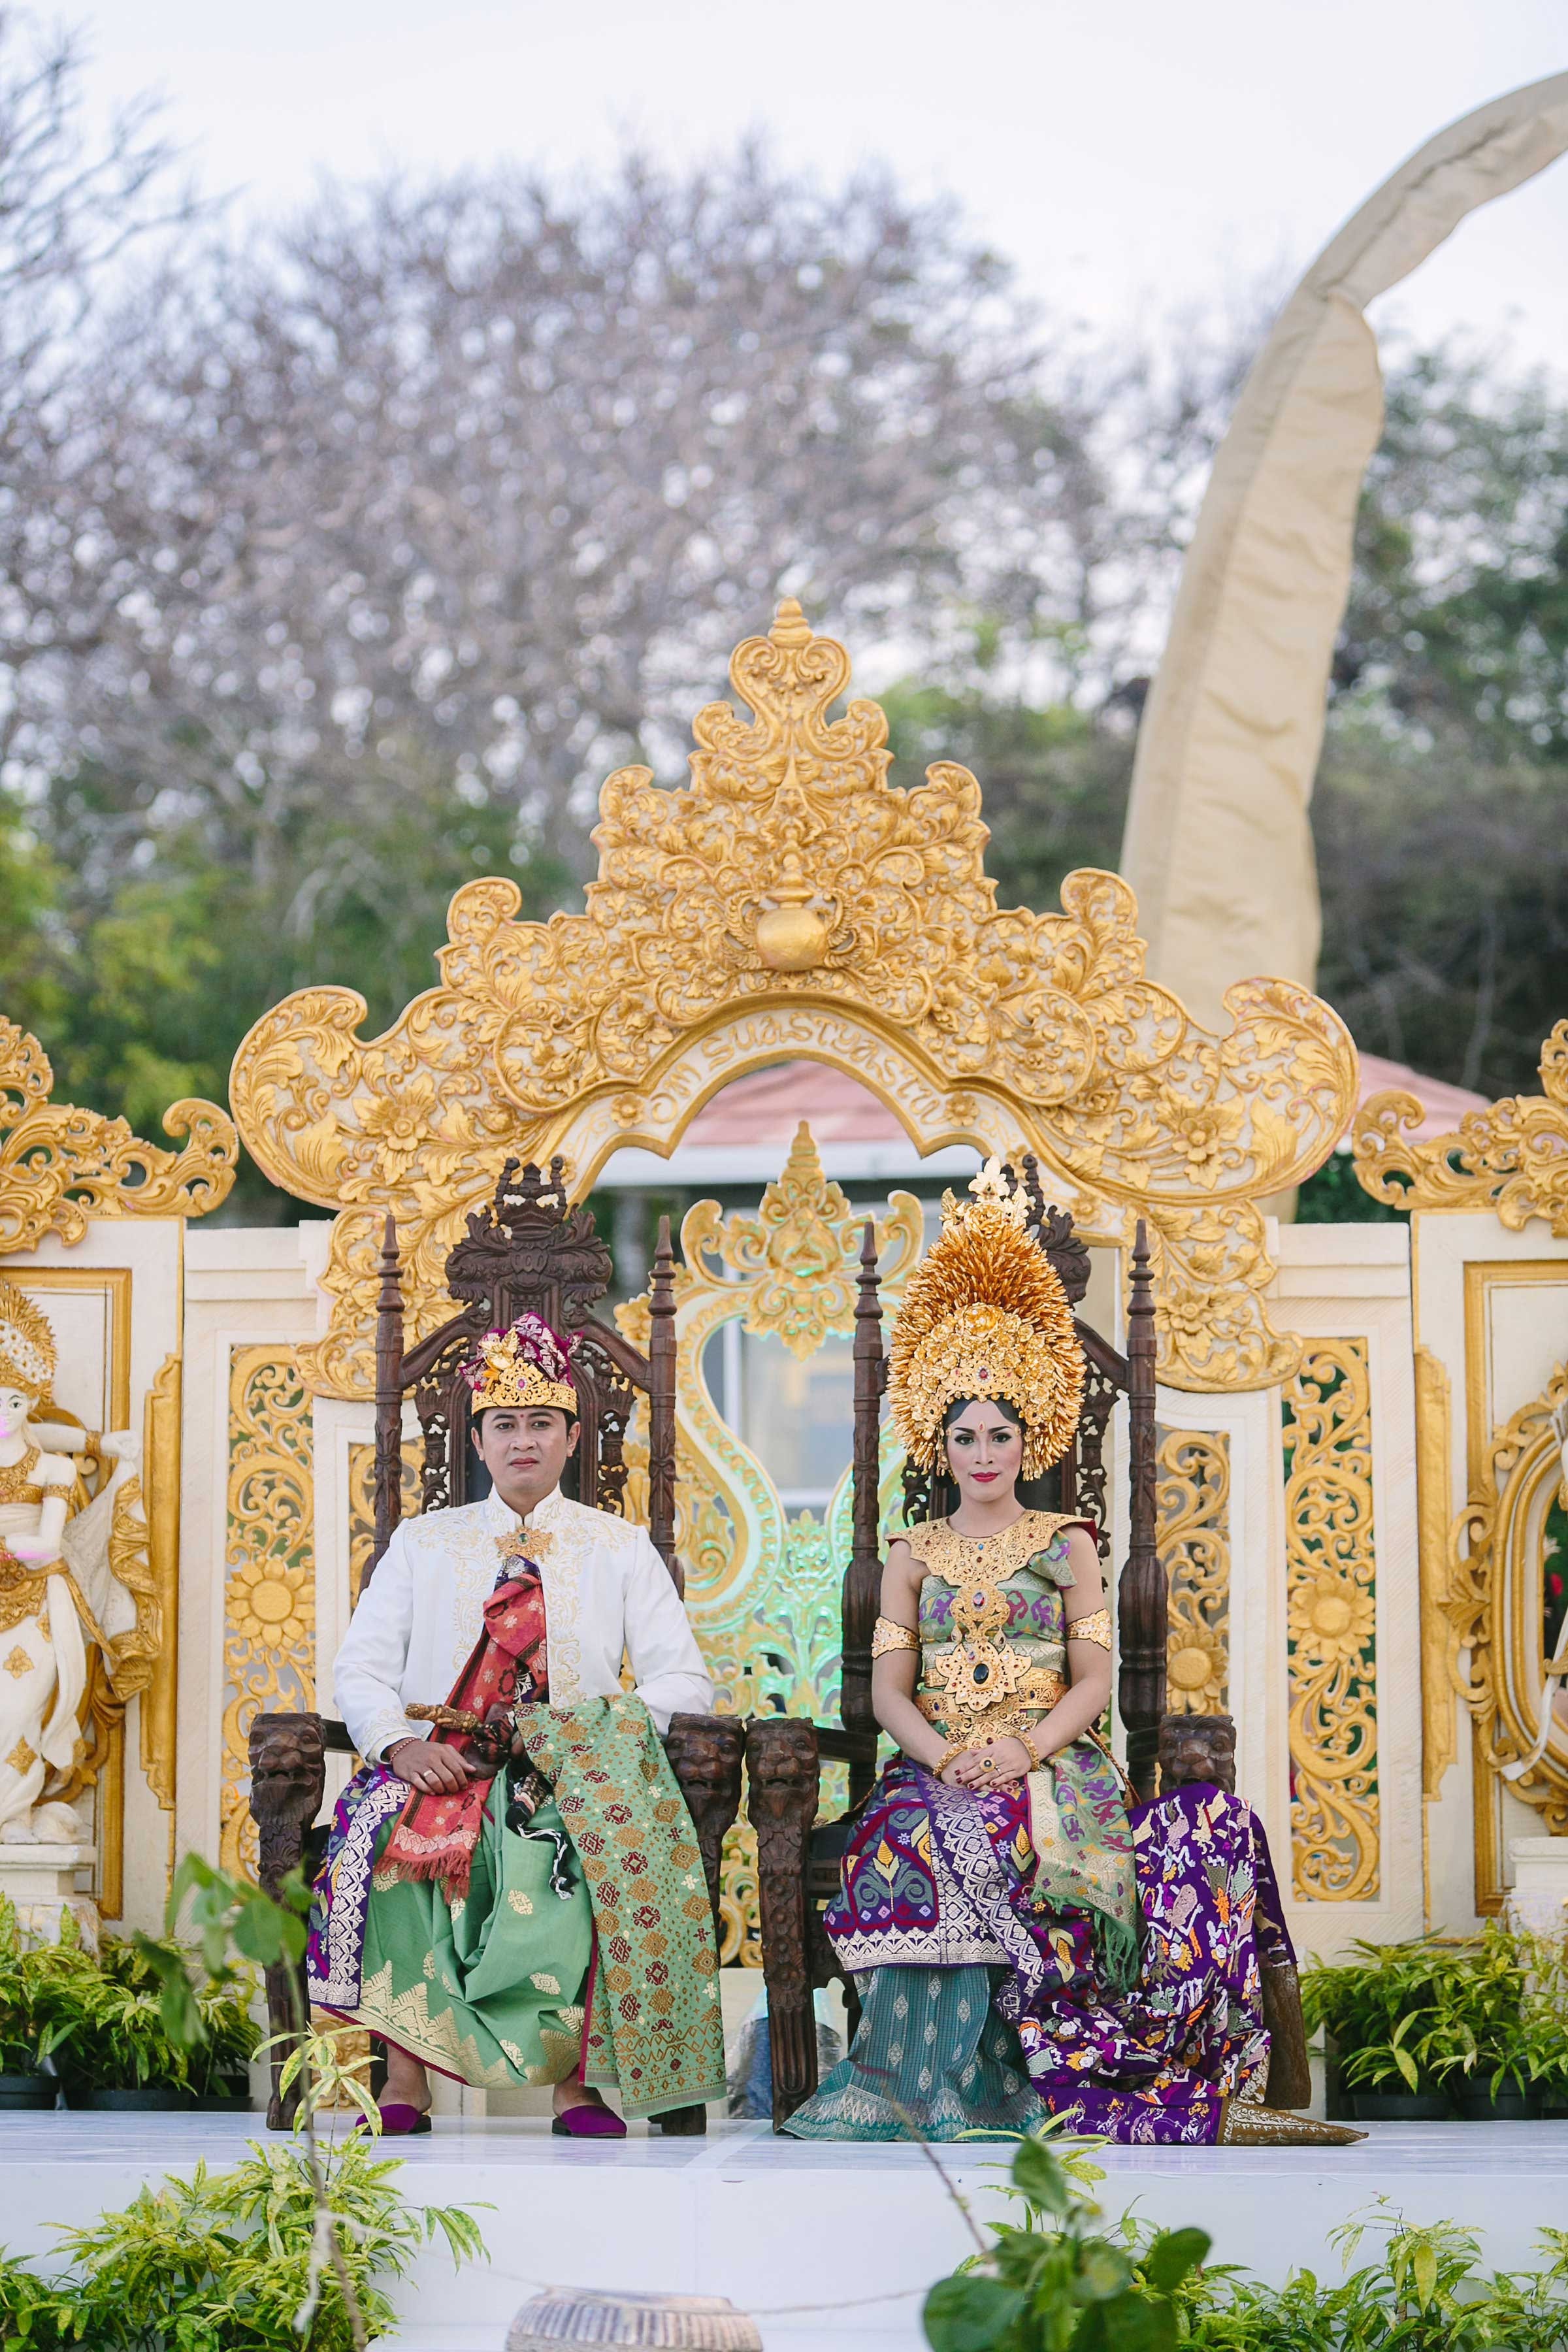 Bride and groom at gold thrones Balinese wedding show at The Mulia Resort in Bali